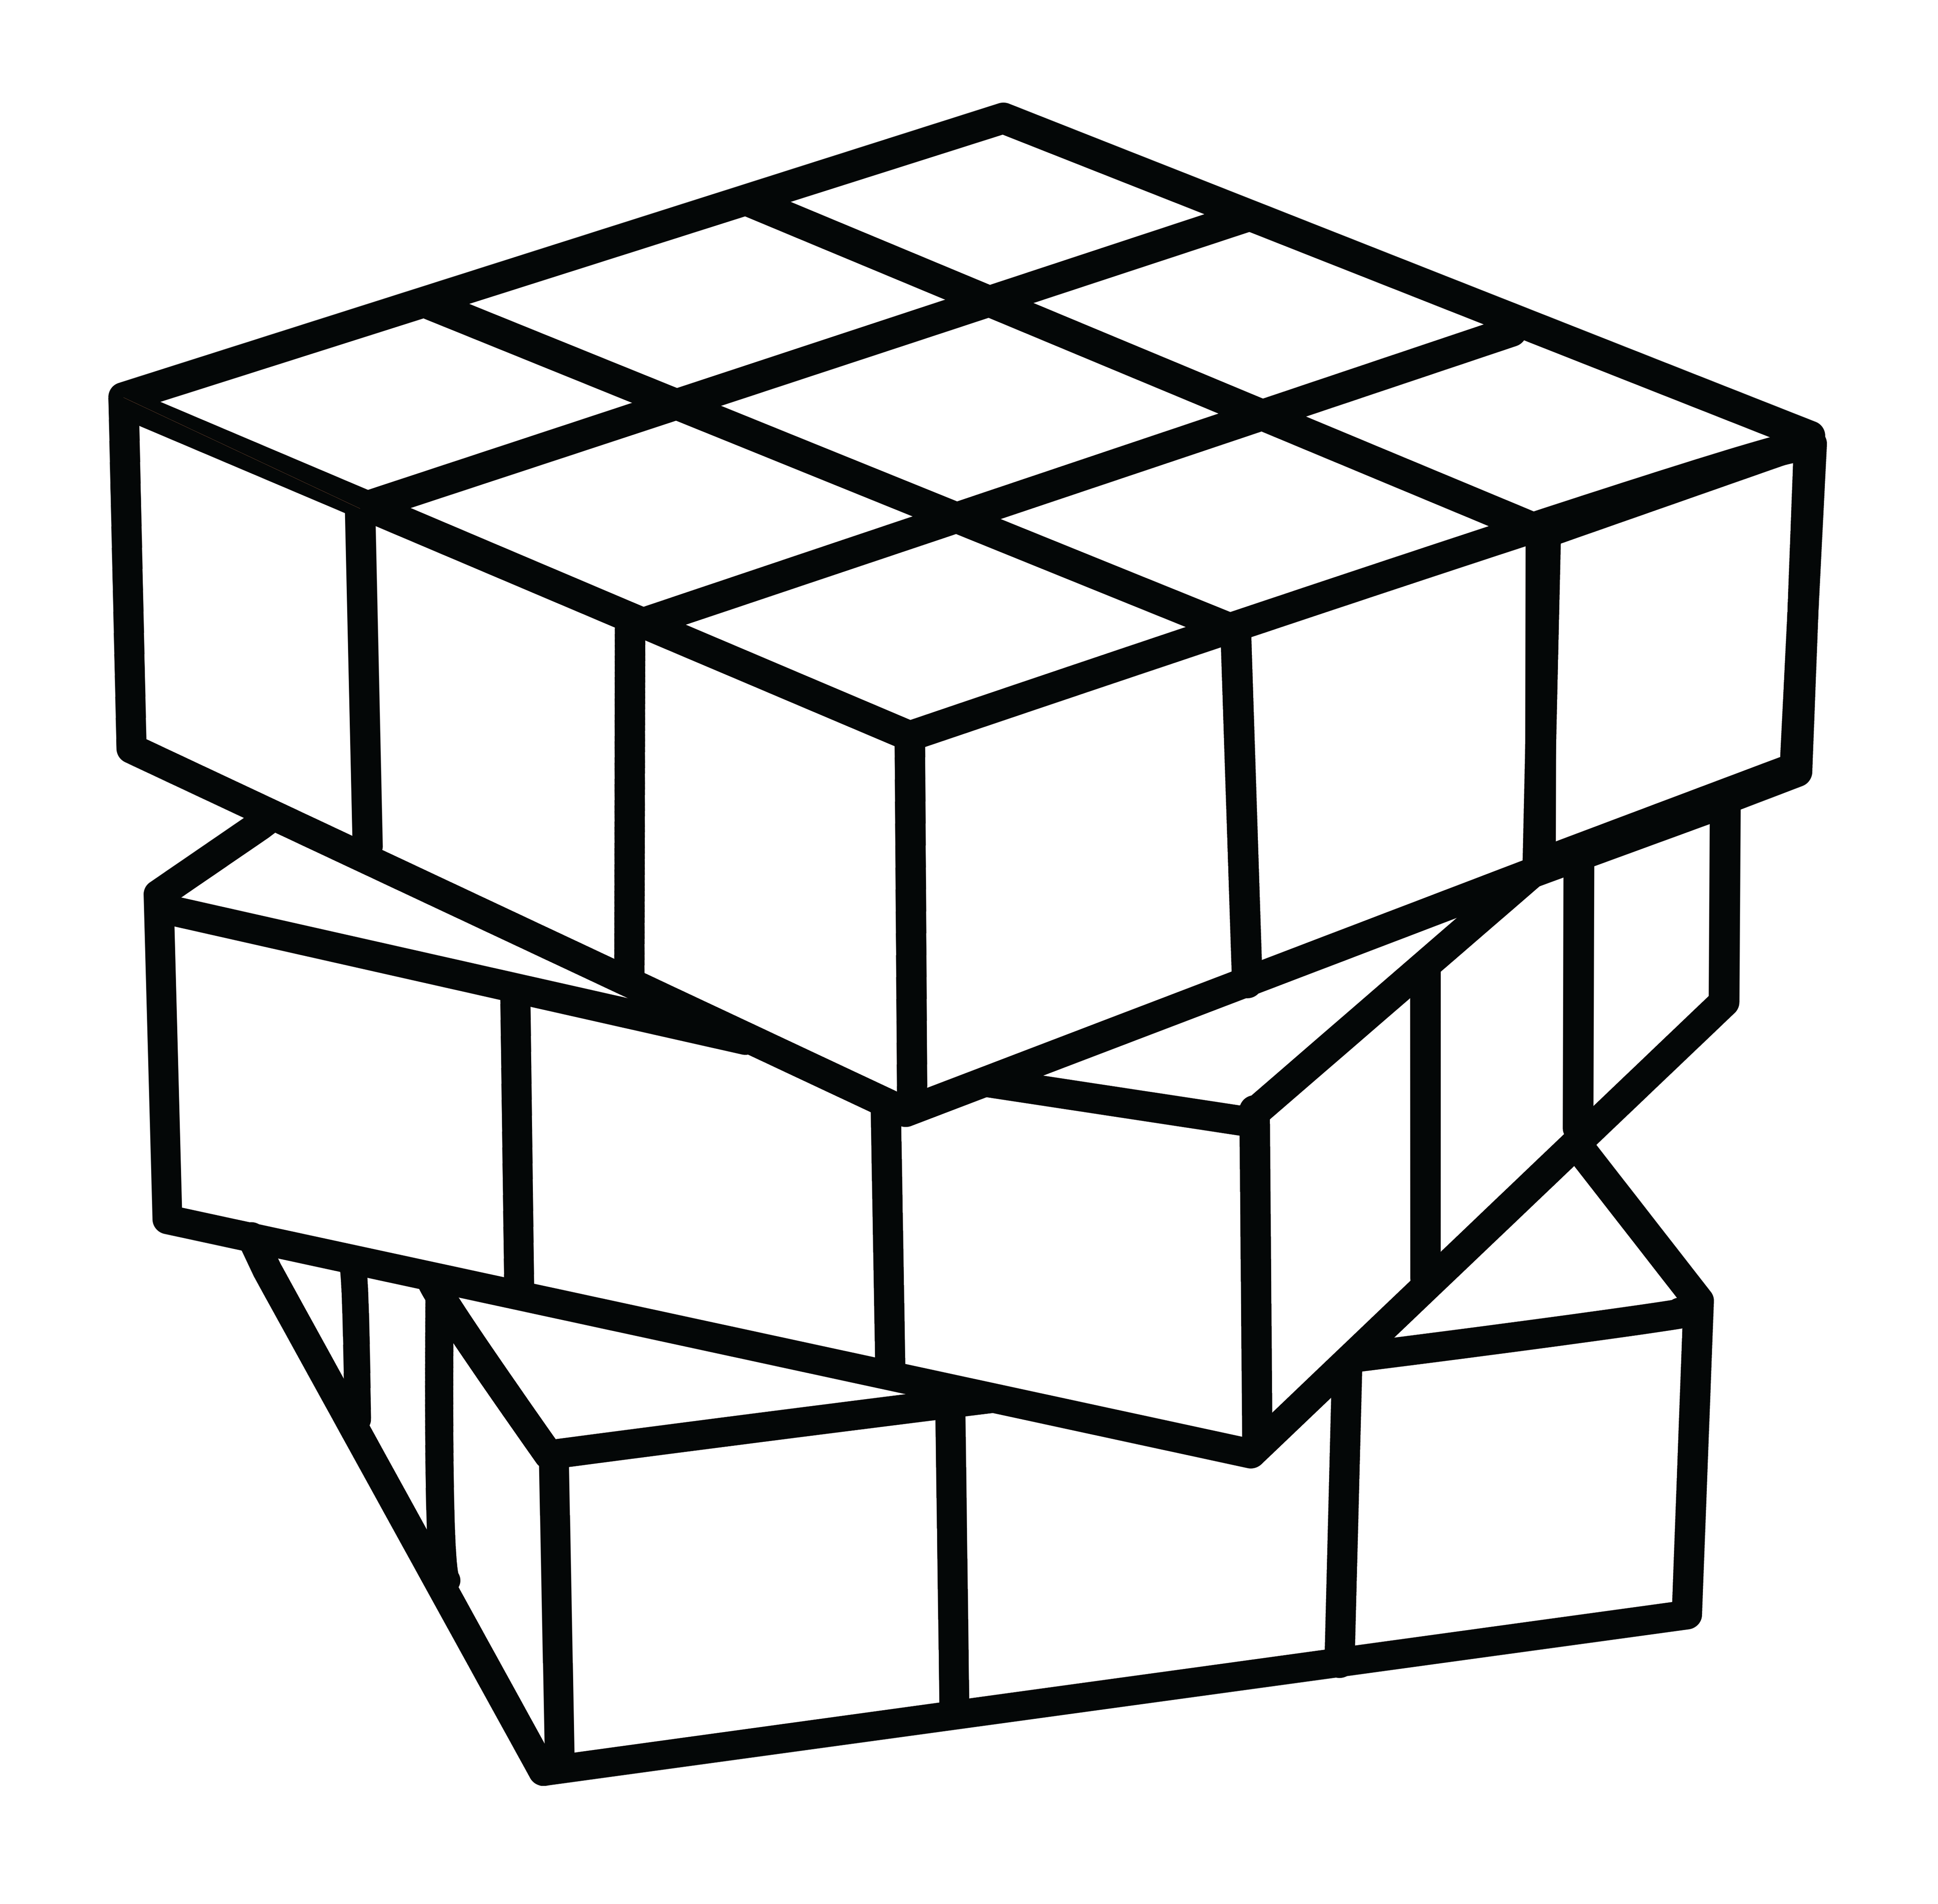 Puzzles clipart rubik's cube. Rubiks coloring page free